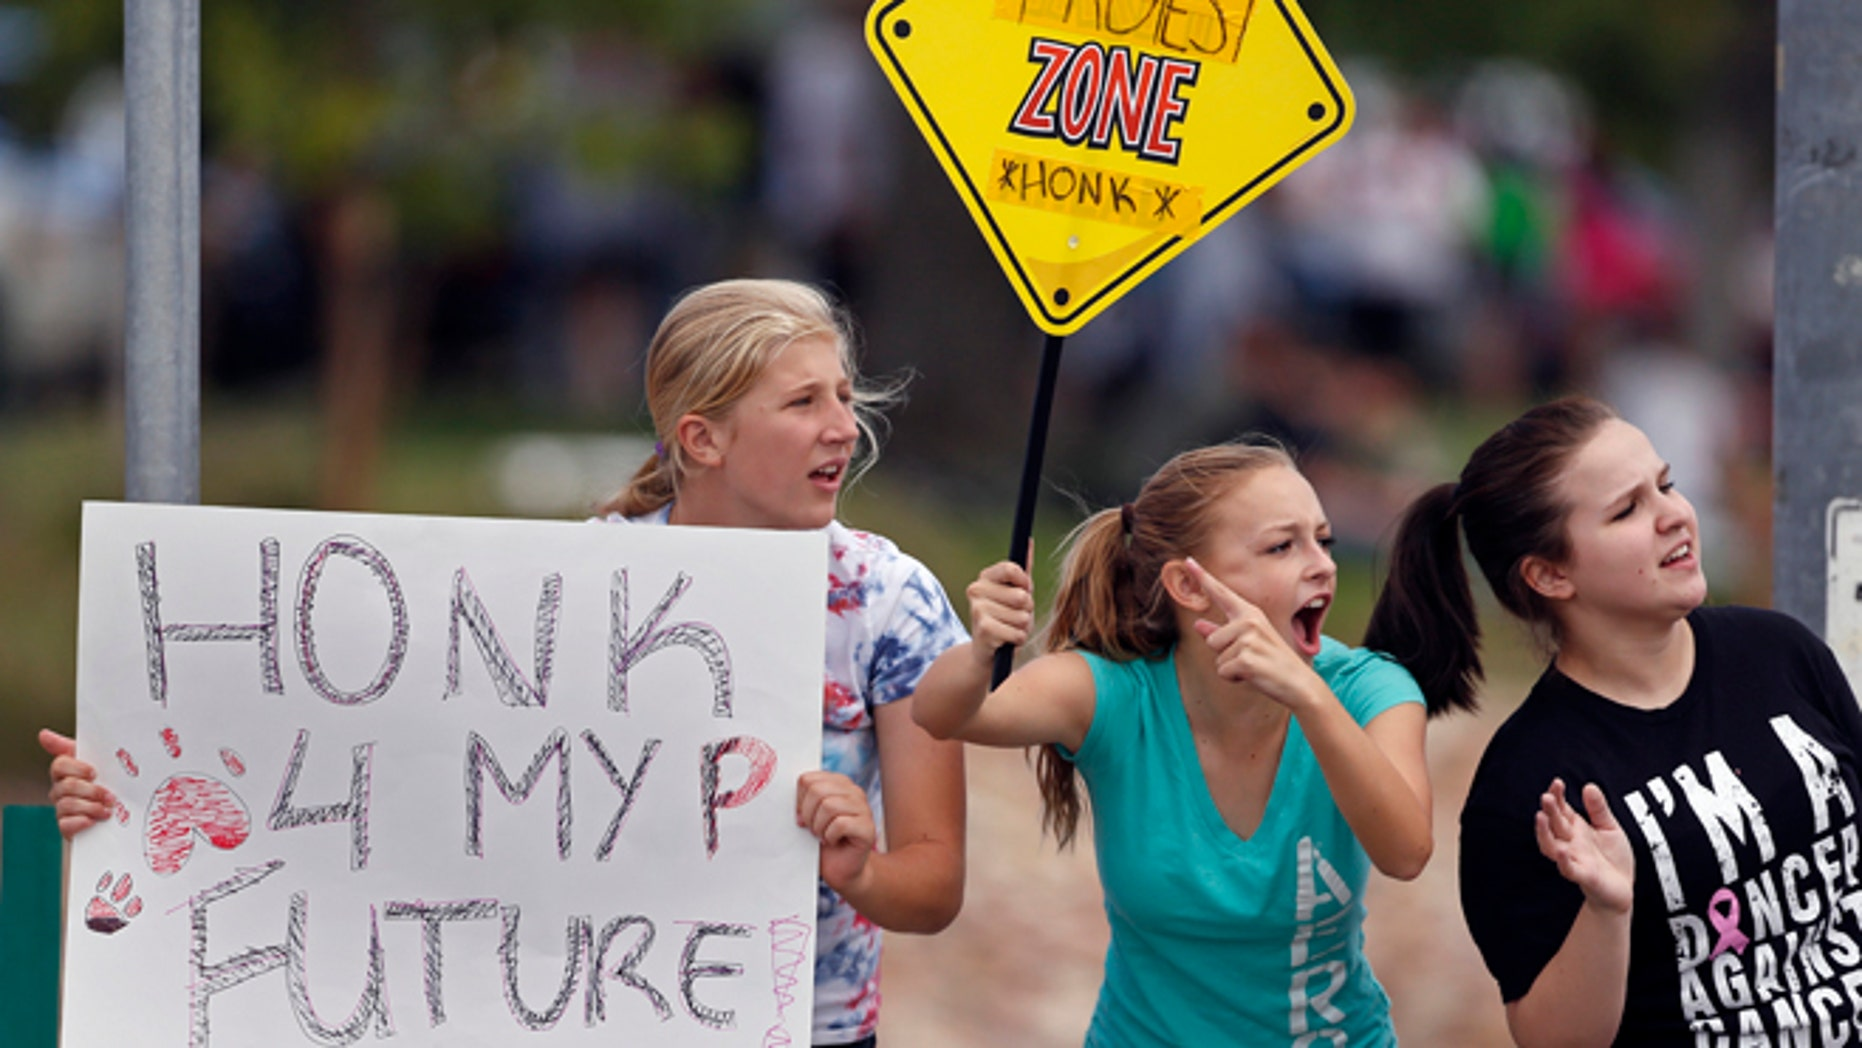 Sept. 23, 2014: Protesting Pamona High School students, left to right, Ciana Vrtikapa, Tori Suyak, and Becca Ferris engage with passing motorists in a busy intersection near their school, during a multi-school protest against a Jefferson County School Board proposal to emphasize patriotism and downplay civil unrest in the teaching of U.S. history, in Arvada, Colo. (AP)